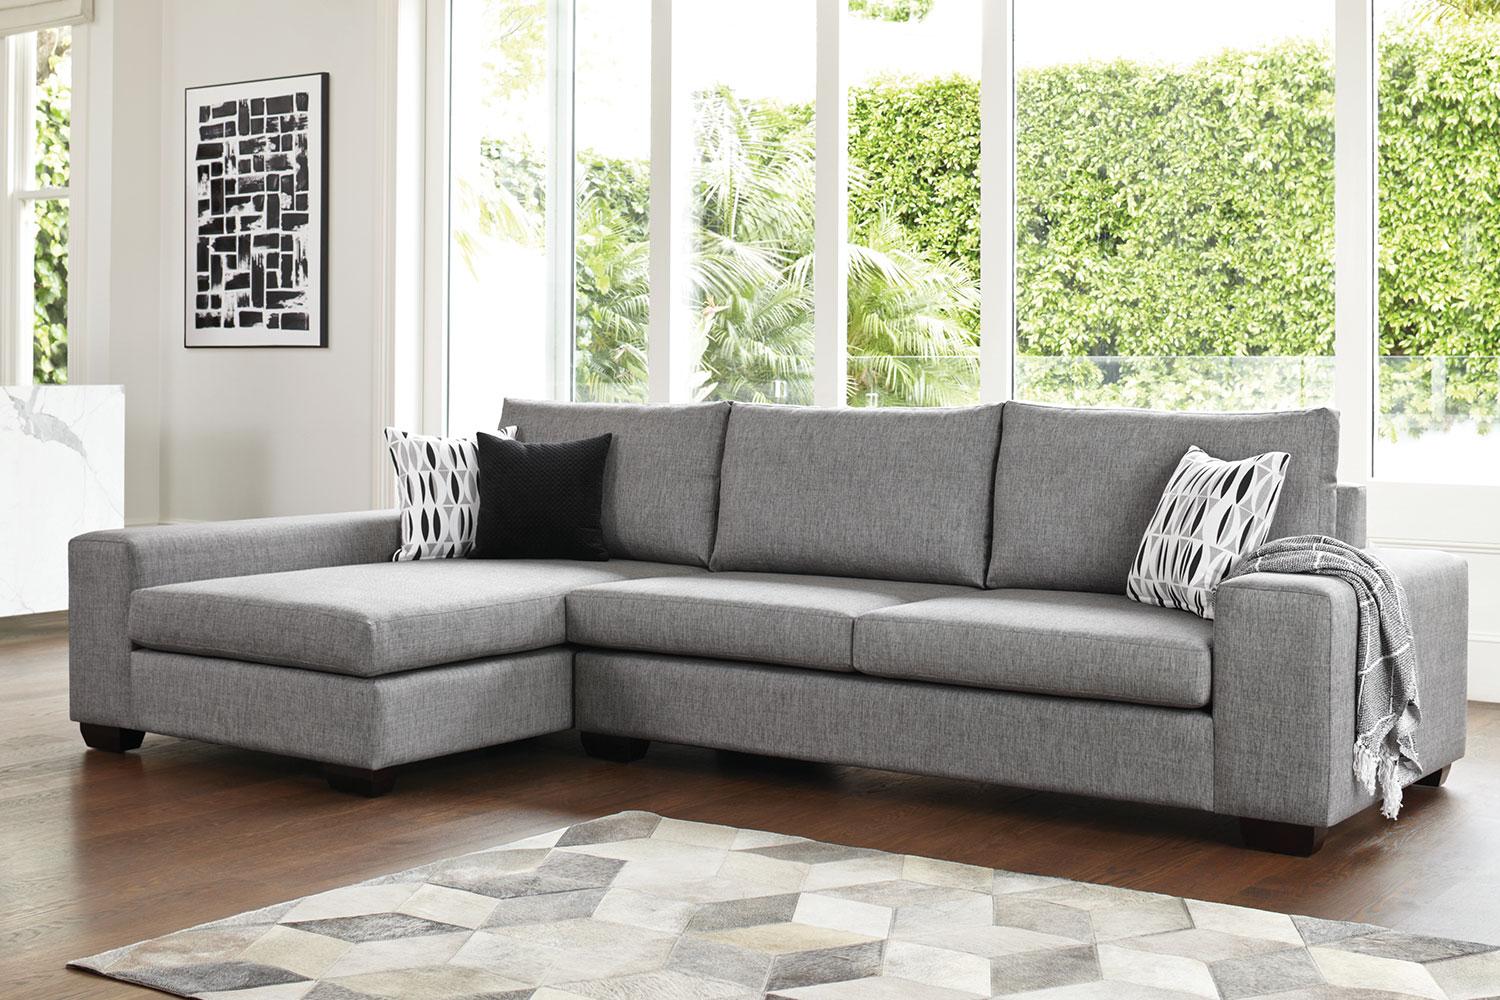 Grey Sofa Nz Kingdom 4 Seater Fabric Sofa With Chaise By Furniture Haven